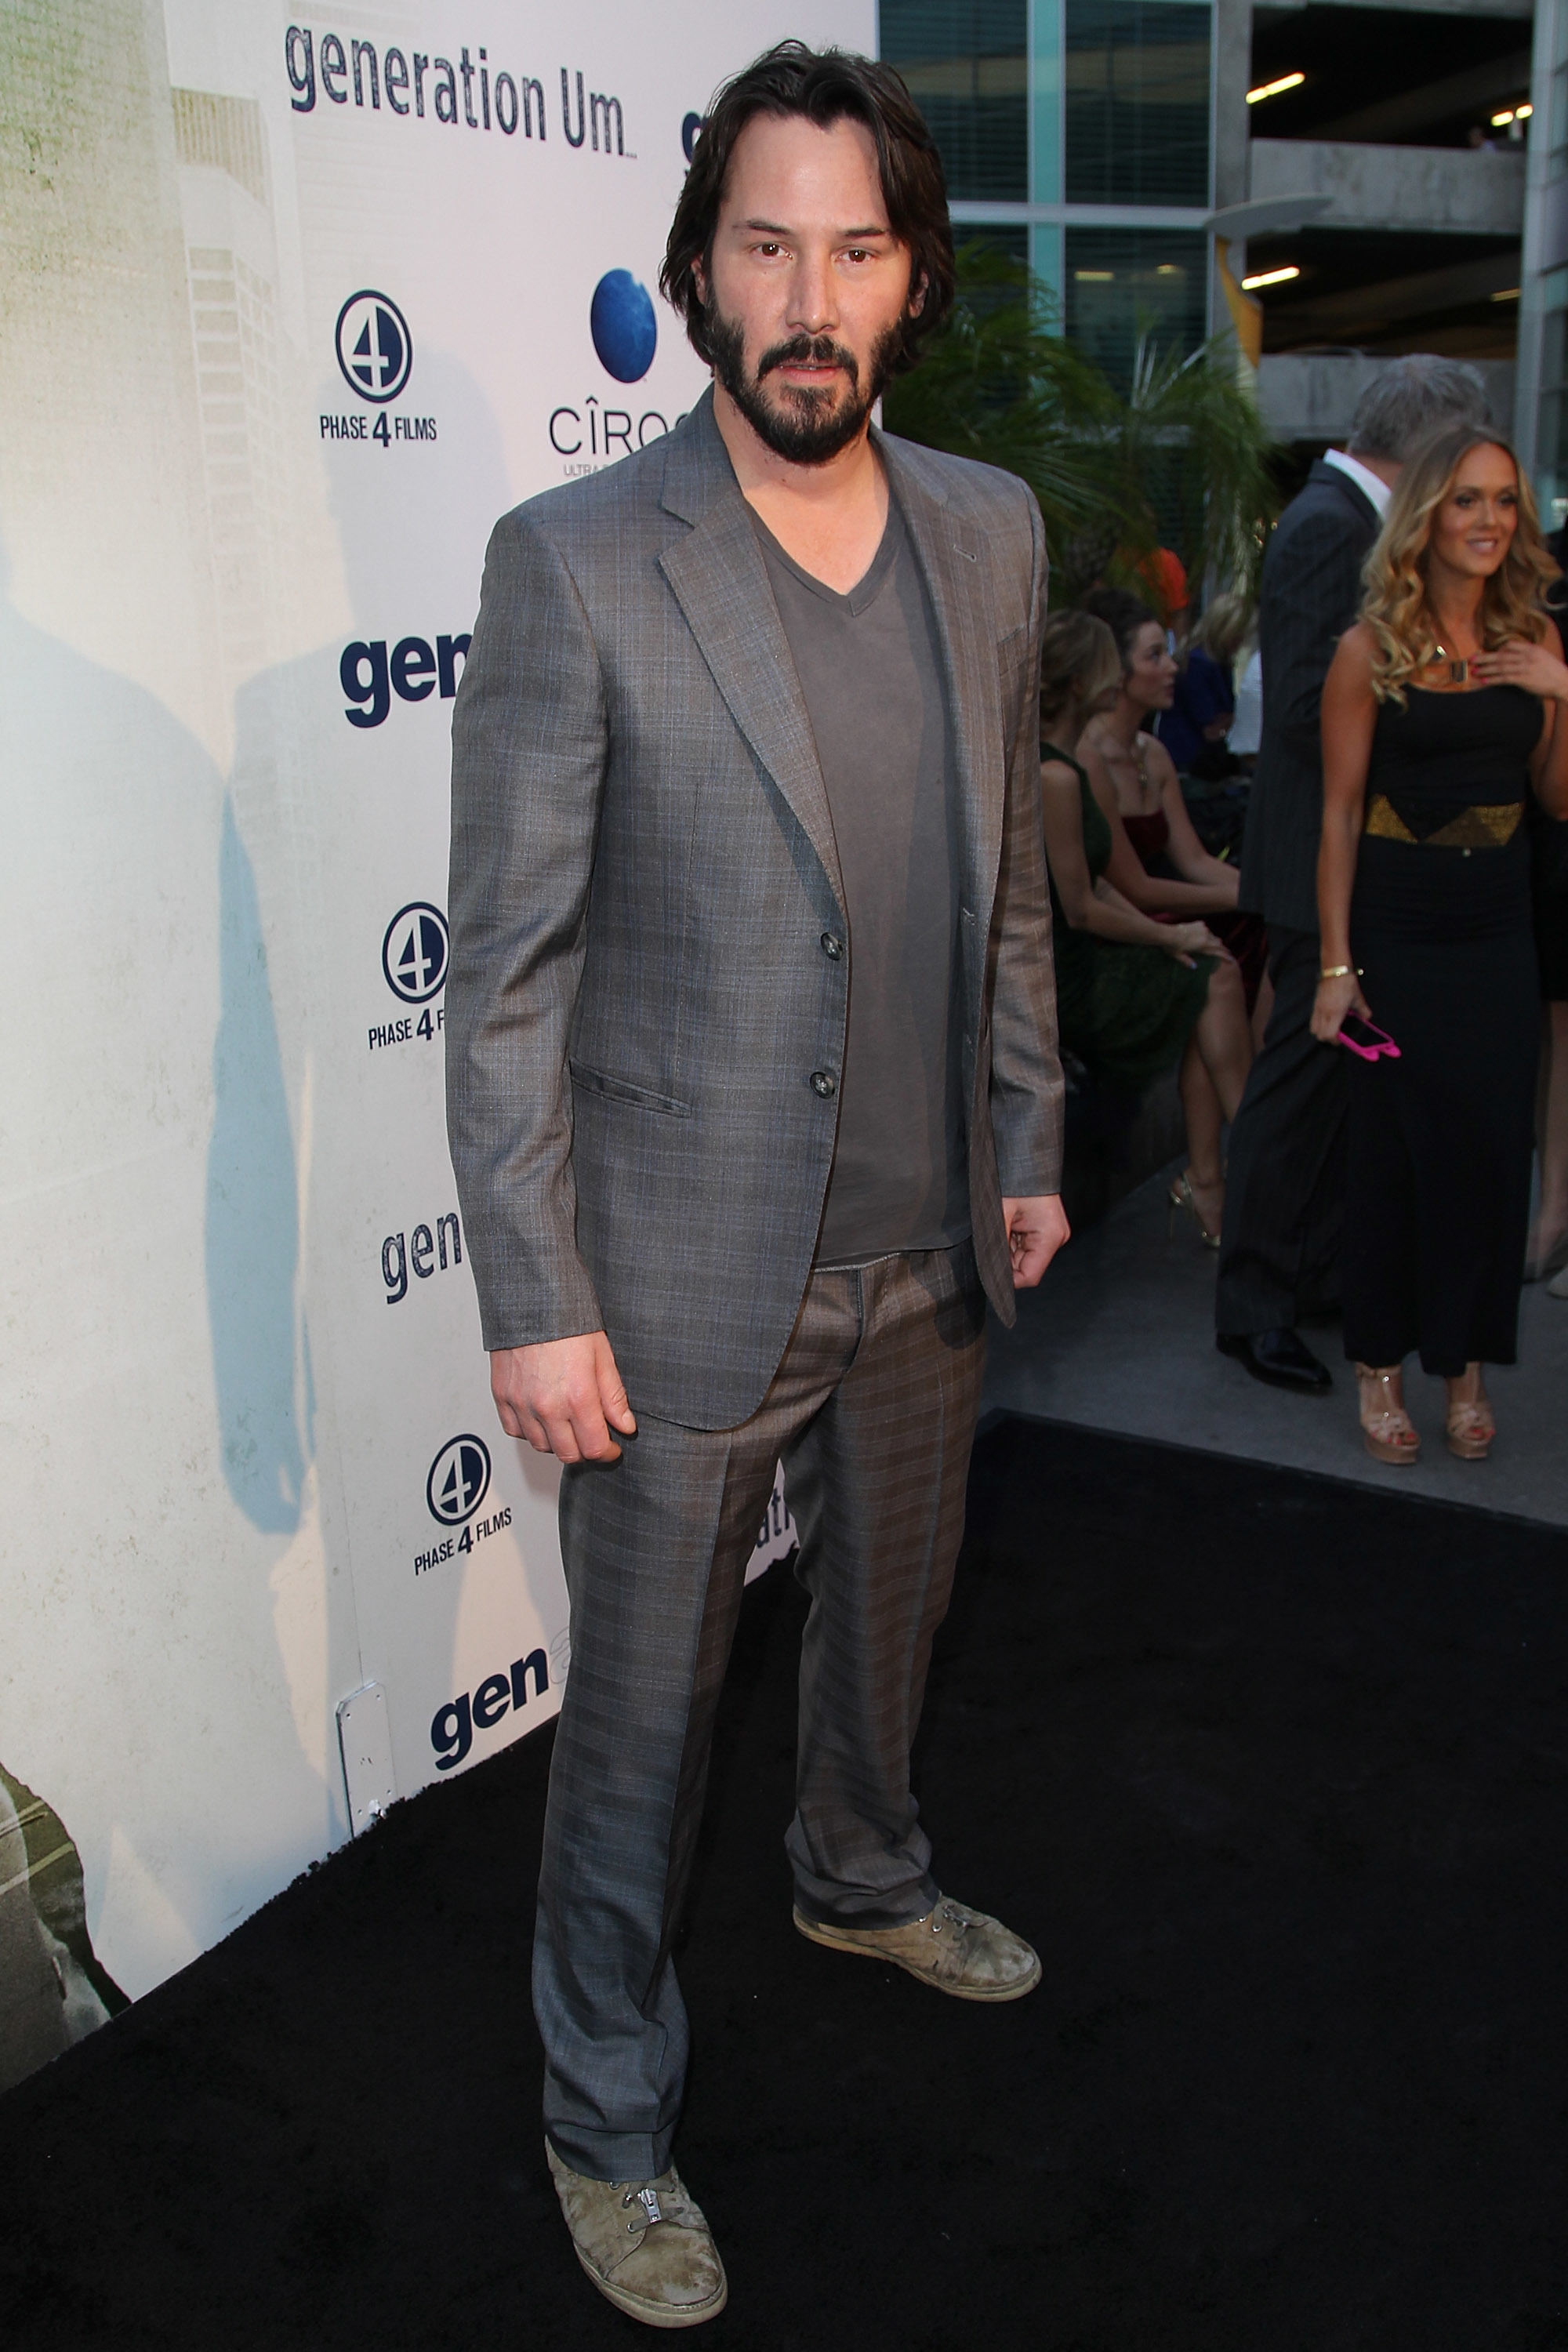 keanu reeves cannes fat bloated looks different ugly hot skinny